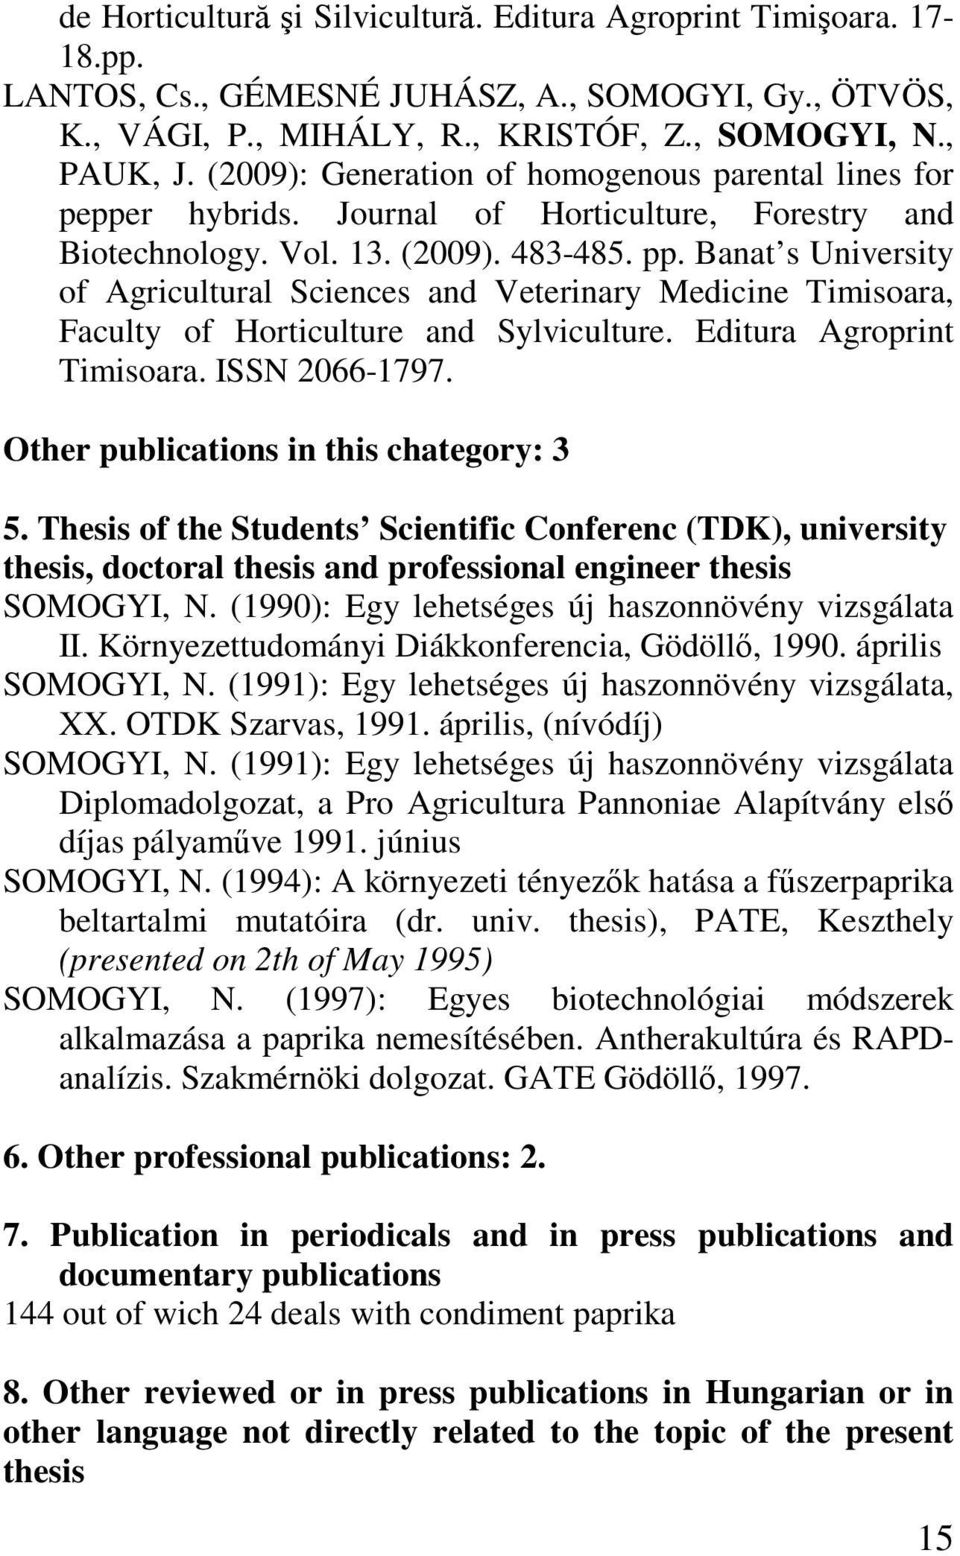 Banat s University of Agricultural Sciences and Veterinary Medicine Timisoara, Faculty of Horticulture and Sylviculture. Editura Agroprint Timisoara. ISSN 2066-1797.